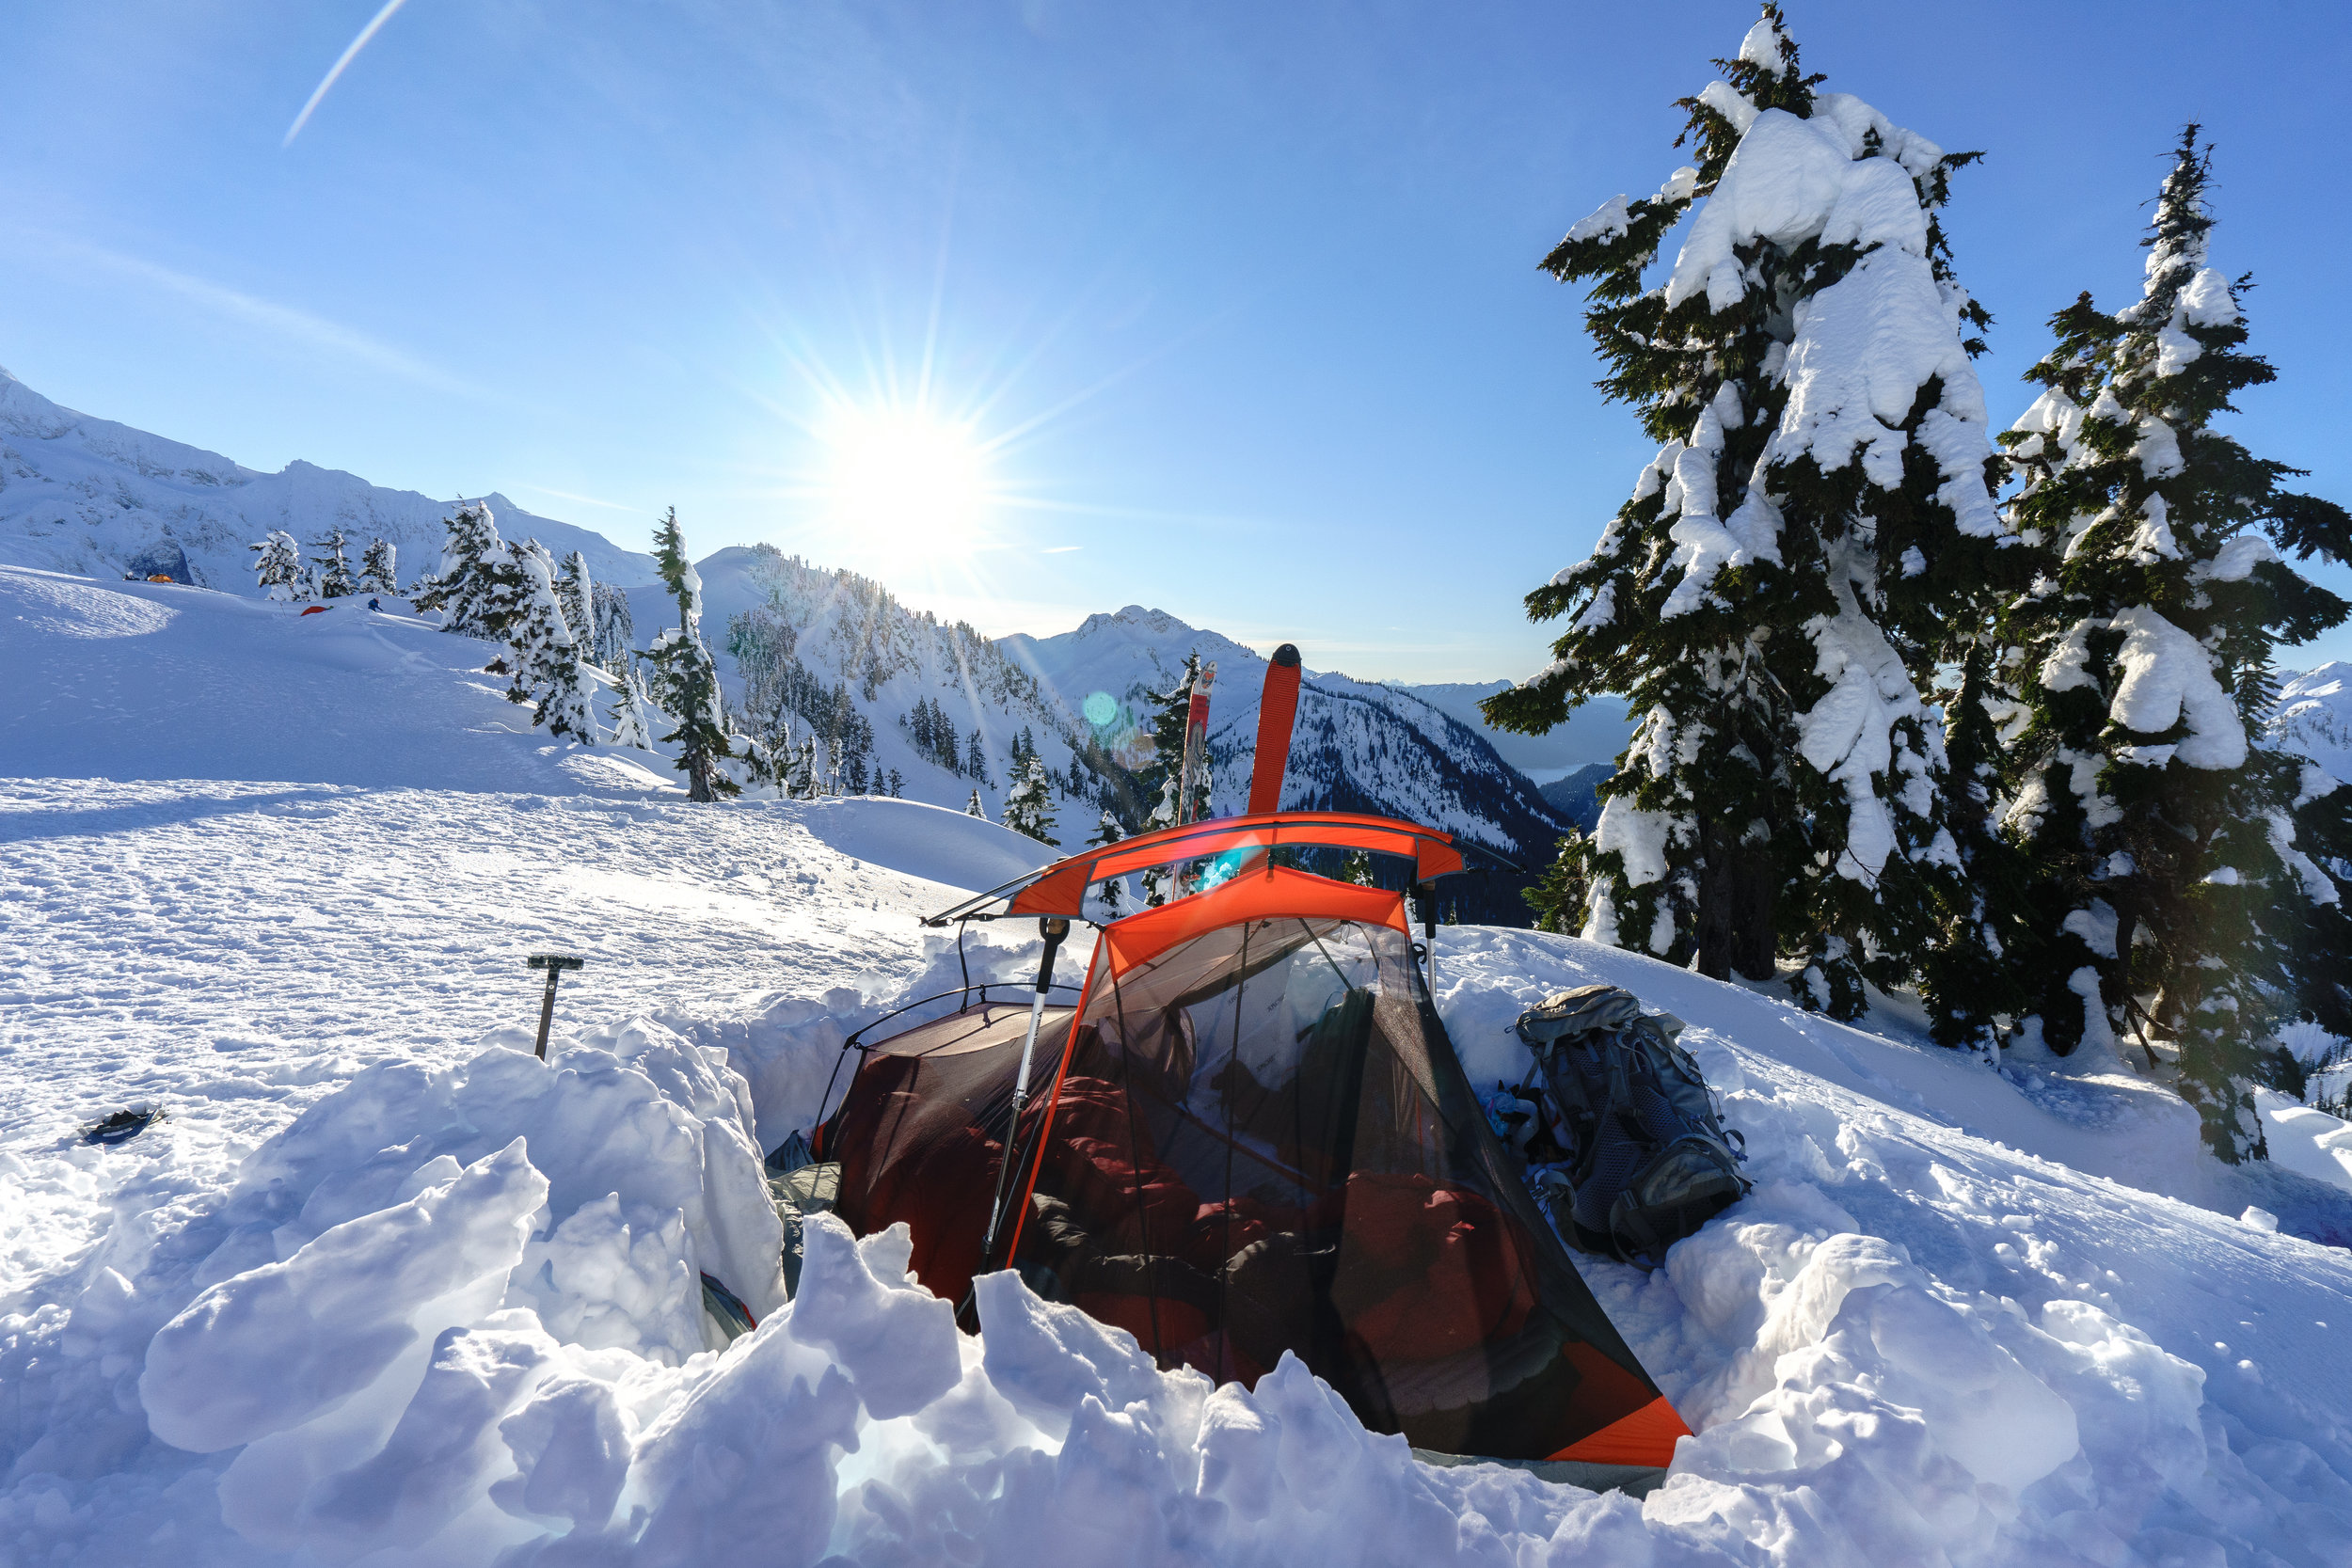 Even this ultra light backpacking tent did fine snow camping! Go with what you have.